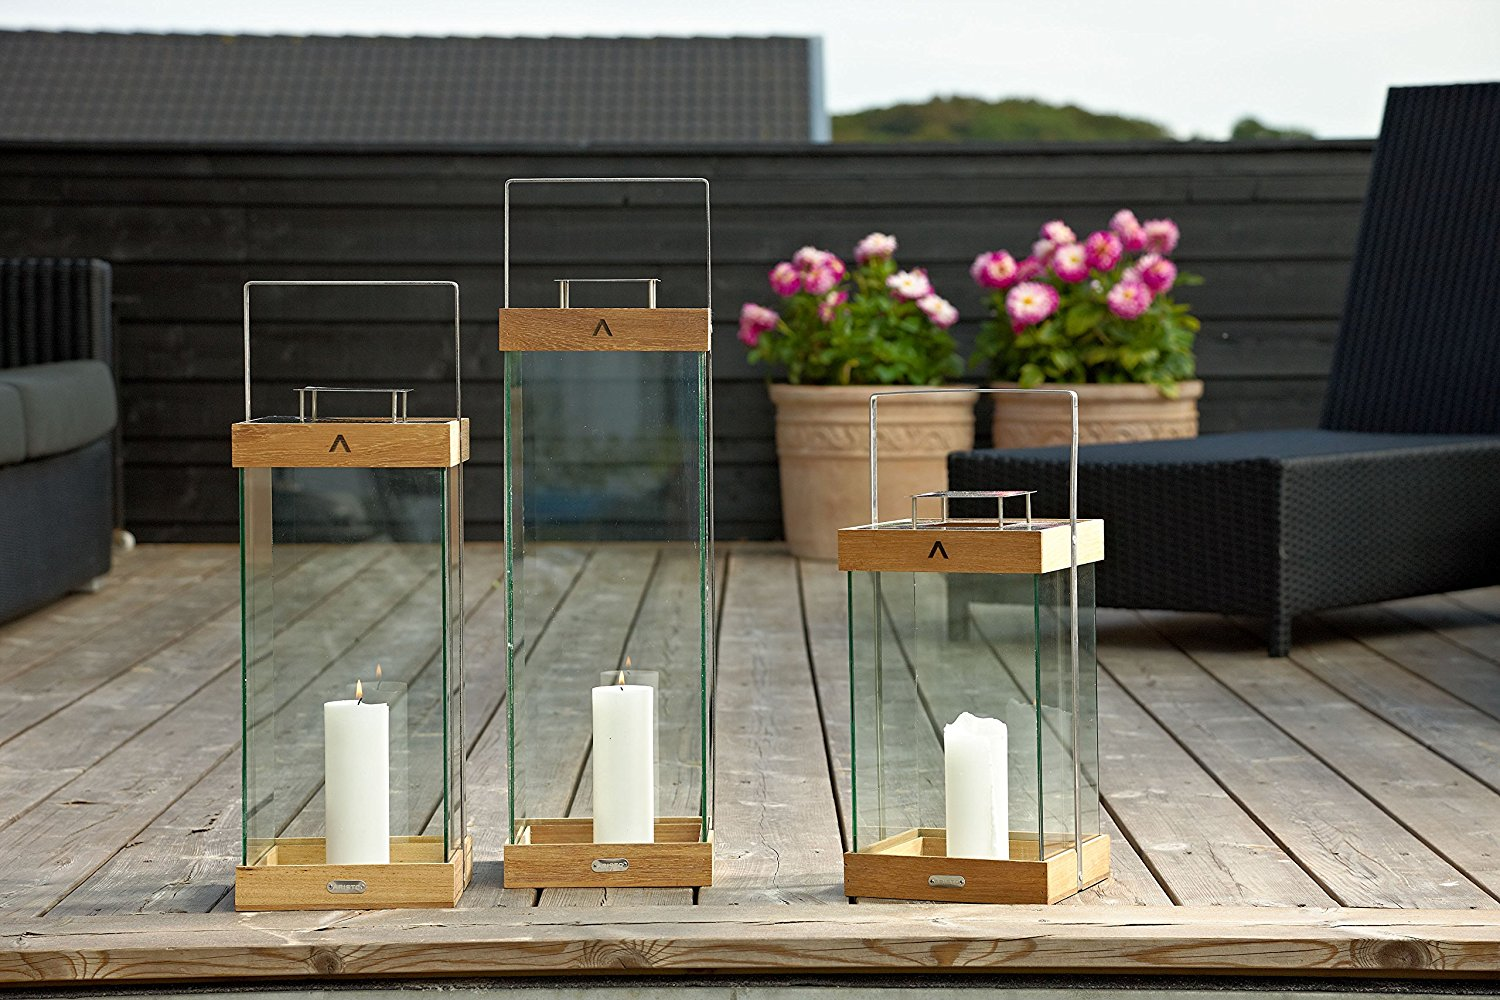 Glas terrasse t r 2017 08 04 14 36 11 for Laterne terrasse